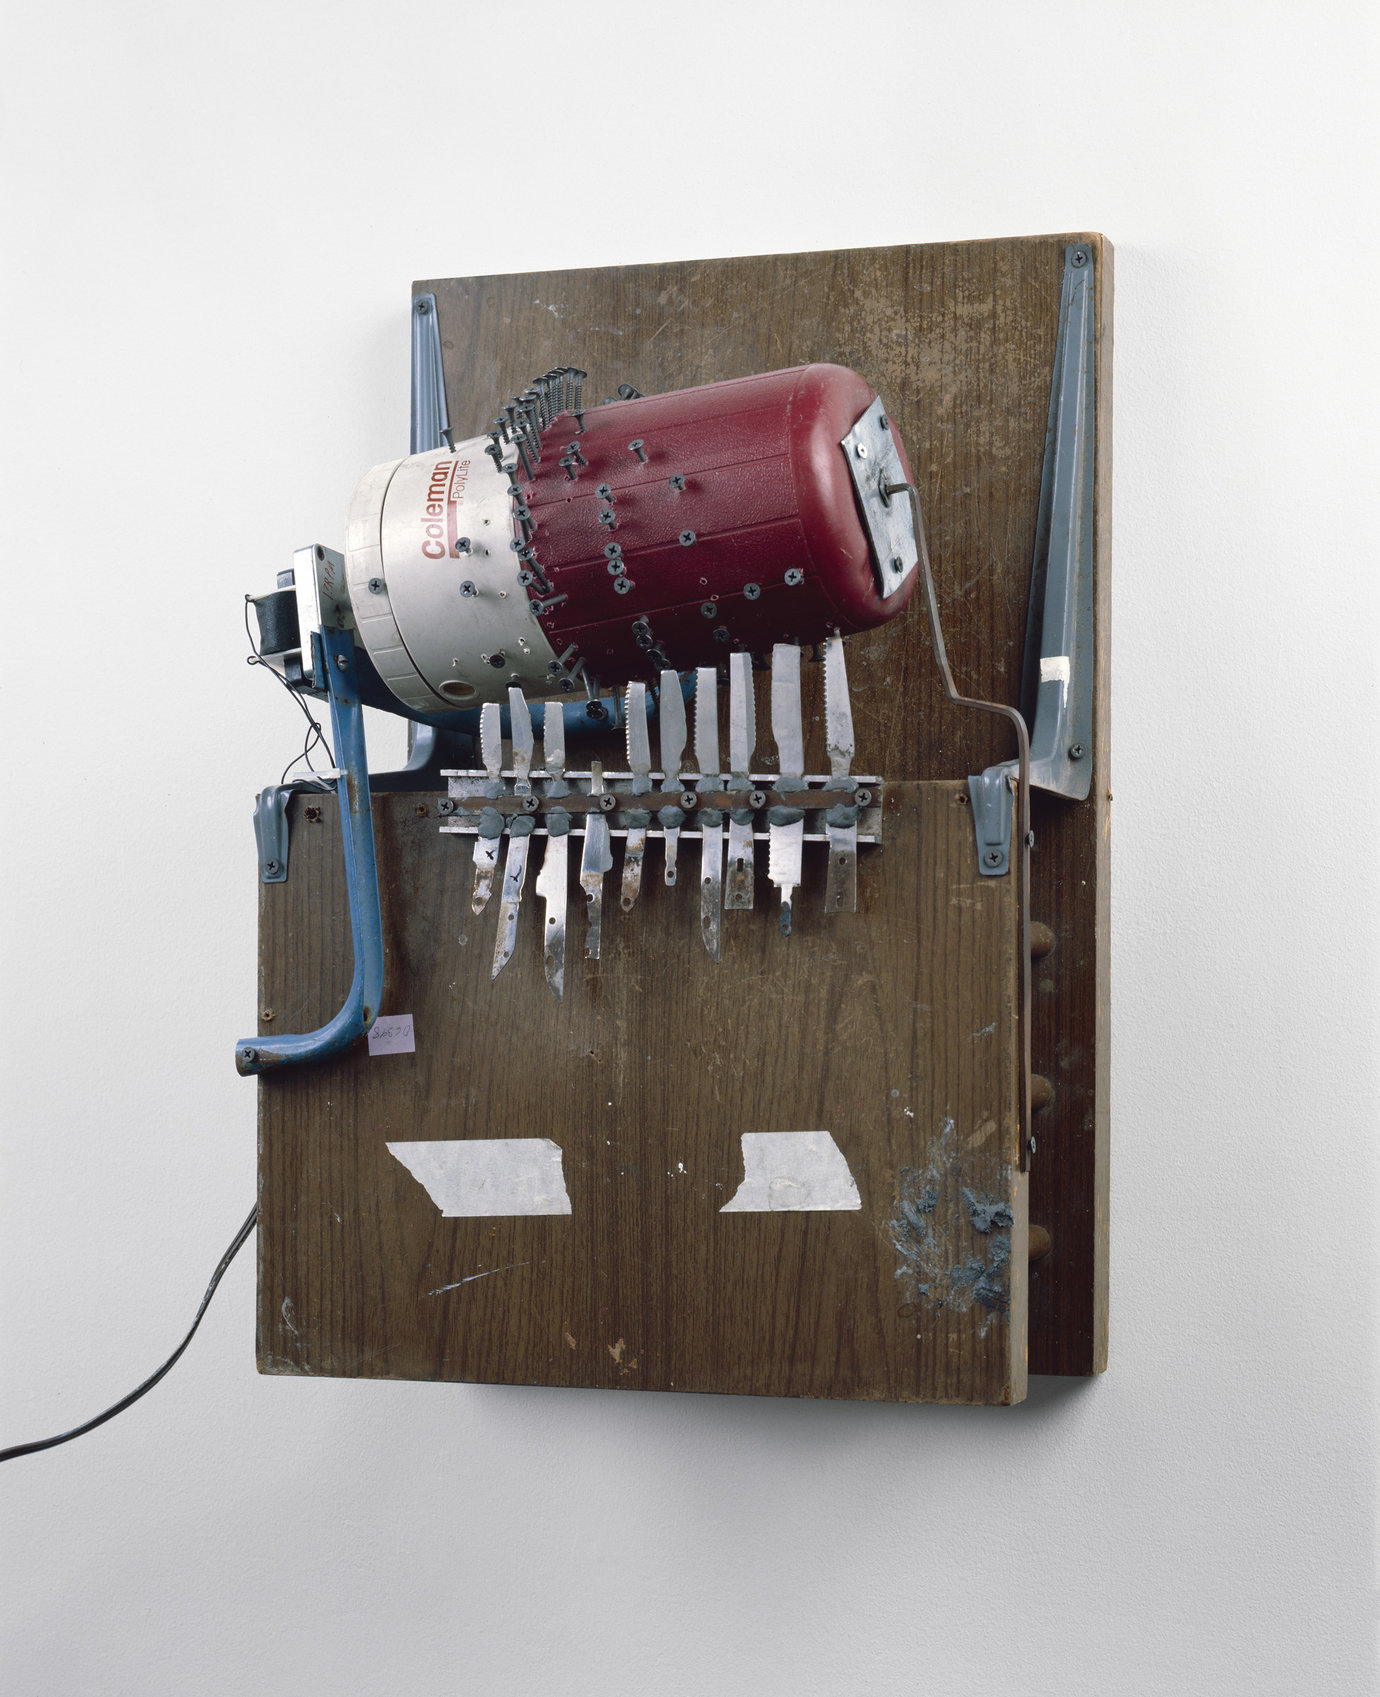 ", 1994. end table, thermos and steak knives, 32"" x 12"" x 18"" (81.3 cm x 30.5 cm x 45.7 cm)."